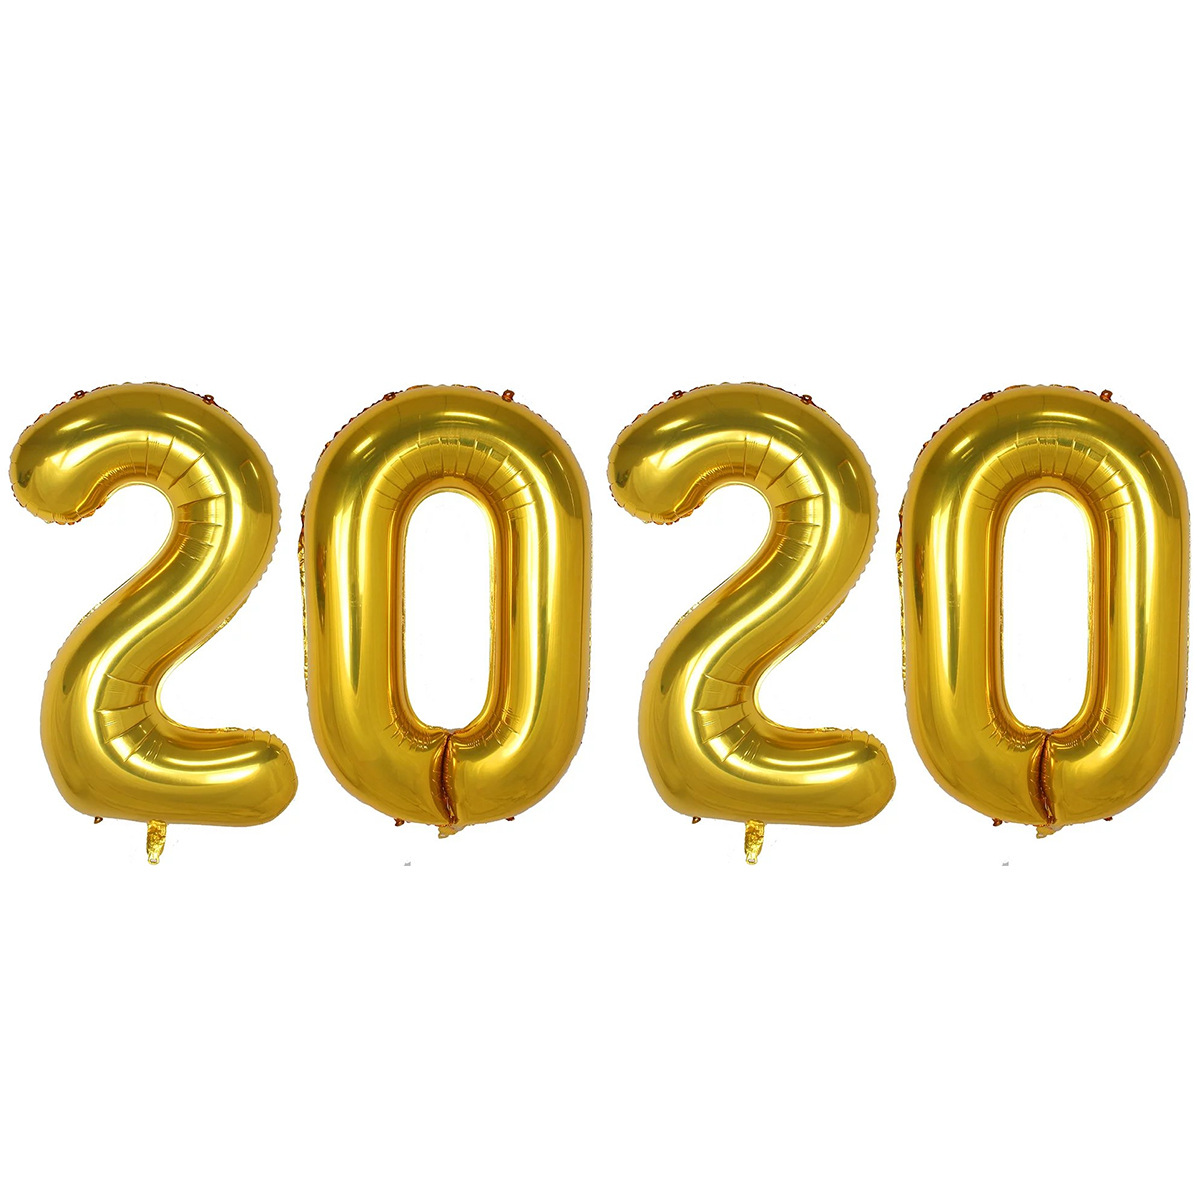 40 Inch Giant Number Foil Balloon 2020 Happy New Year Aluminum Balloon for Party Supplies Helium Floating 2020 Figure Globo Set